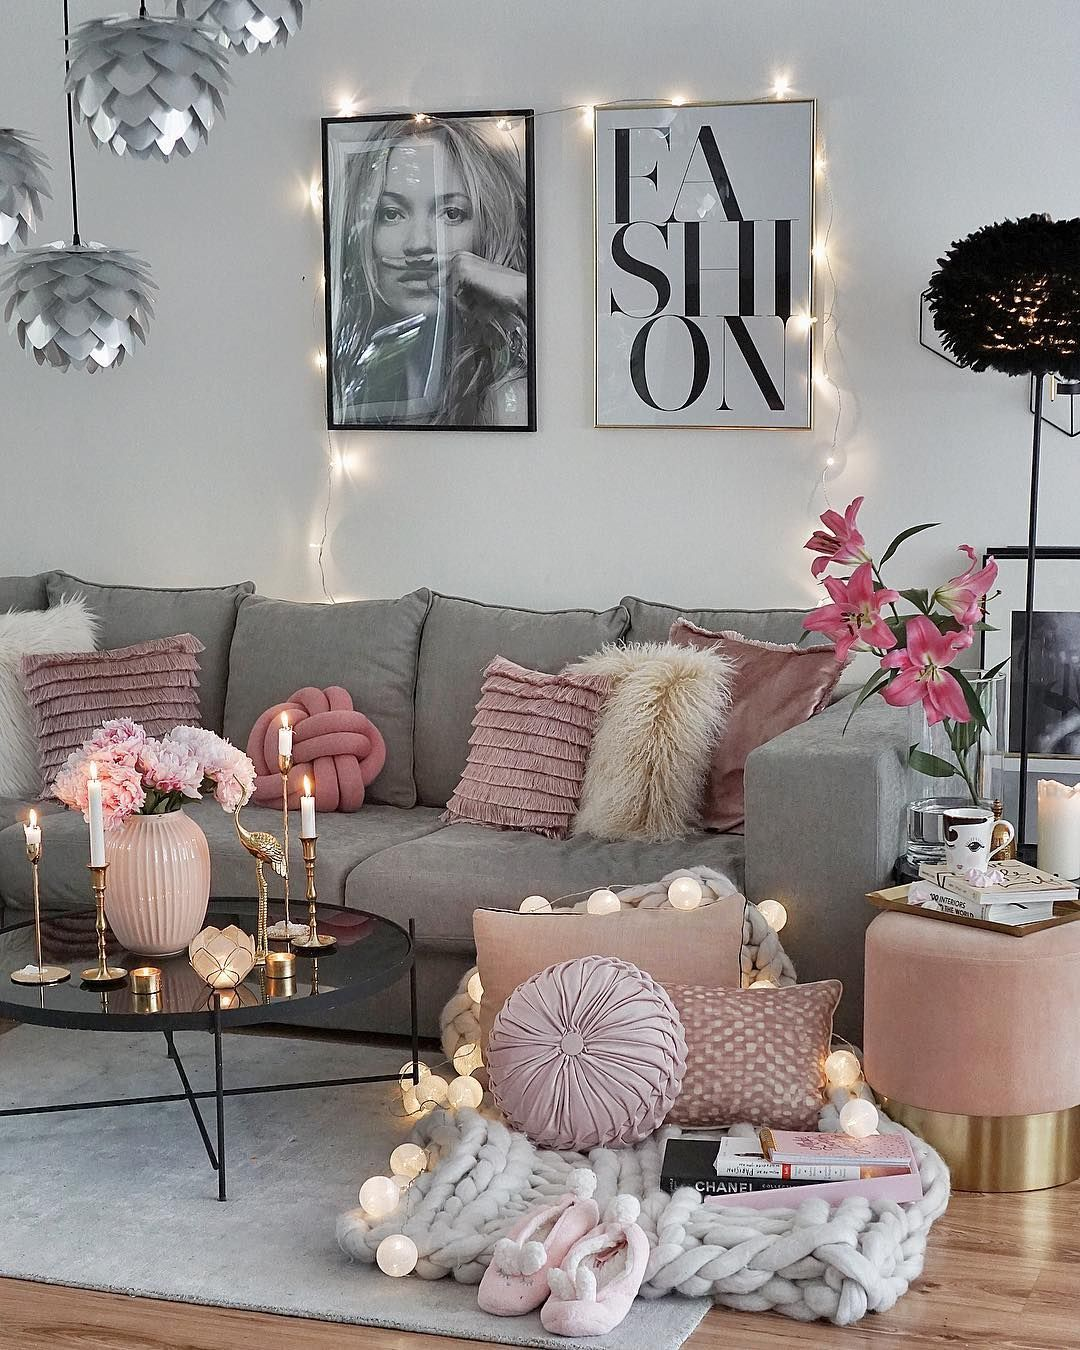 All The Hygge Feels In This Living Room Beautiful Pink And